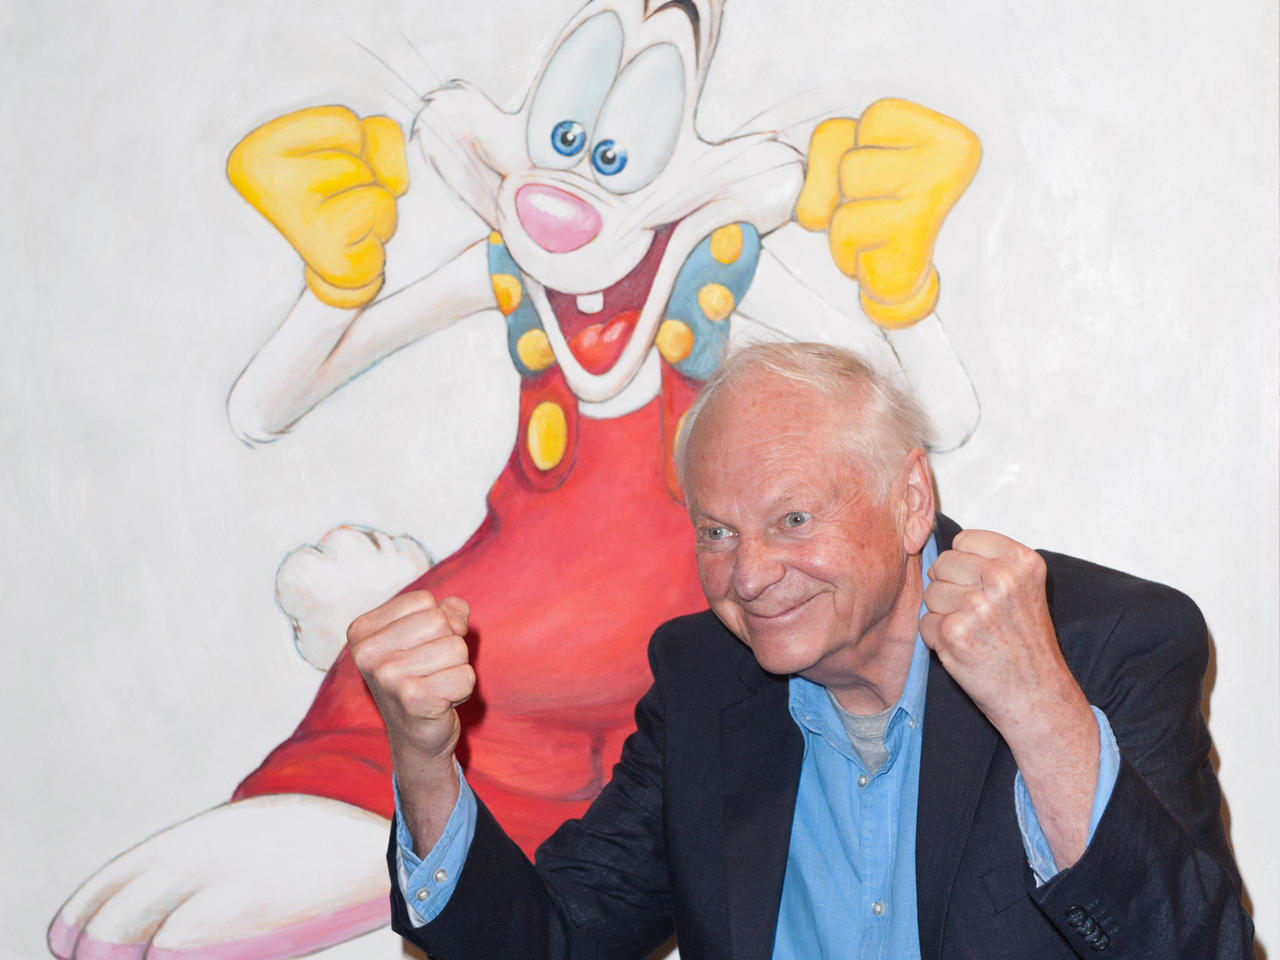 richard-williams-whgo-framed-roger-rabbit-photo-jordan-murph-c-ampas.jpg